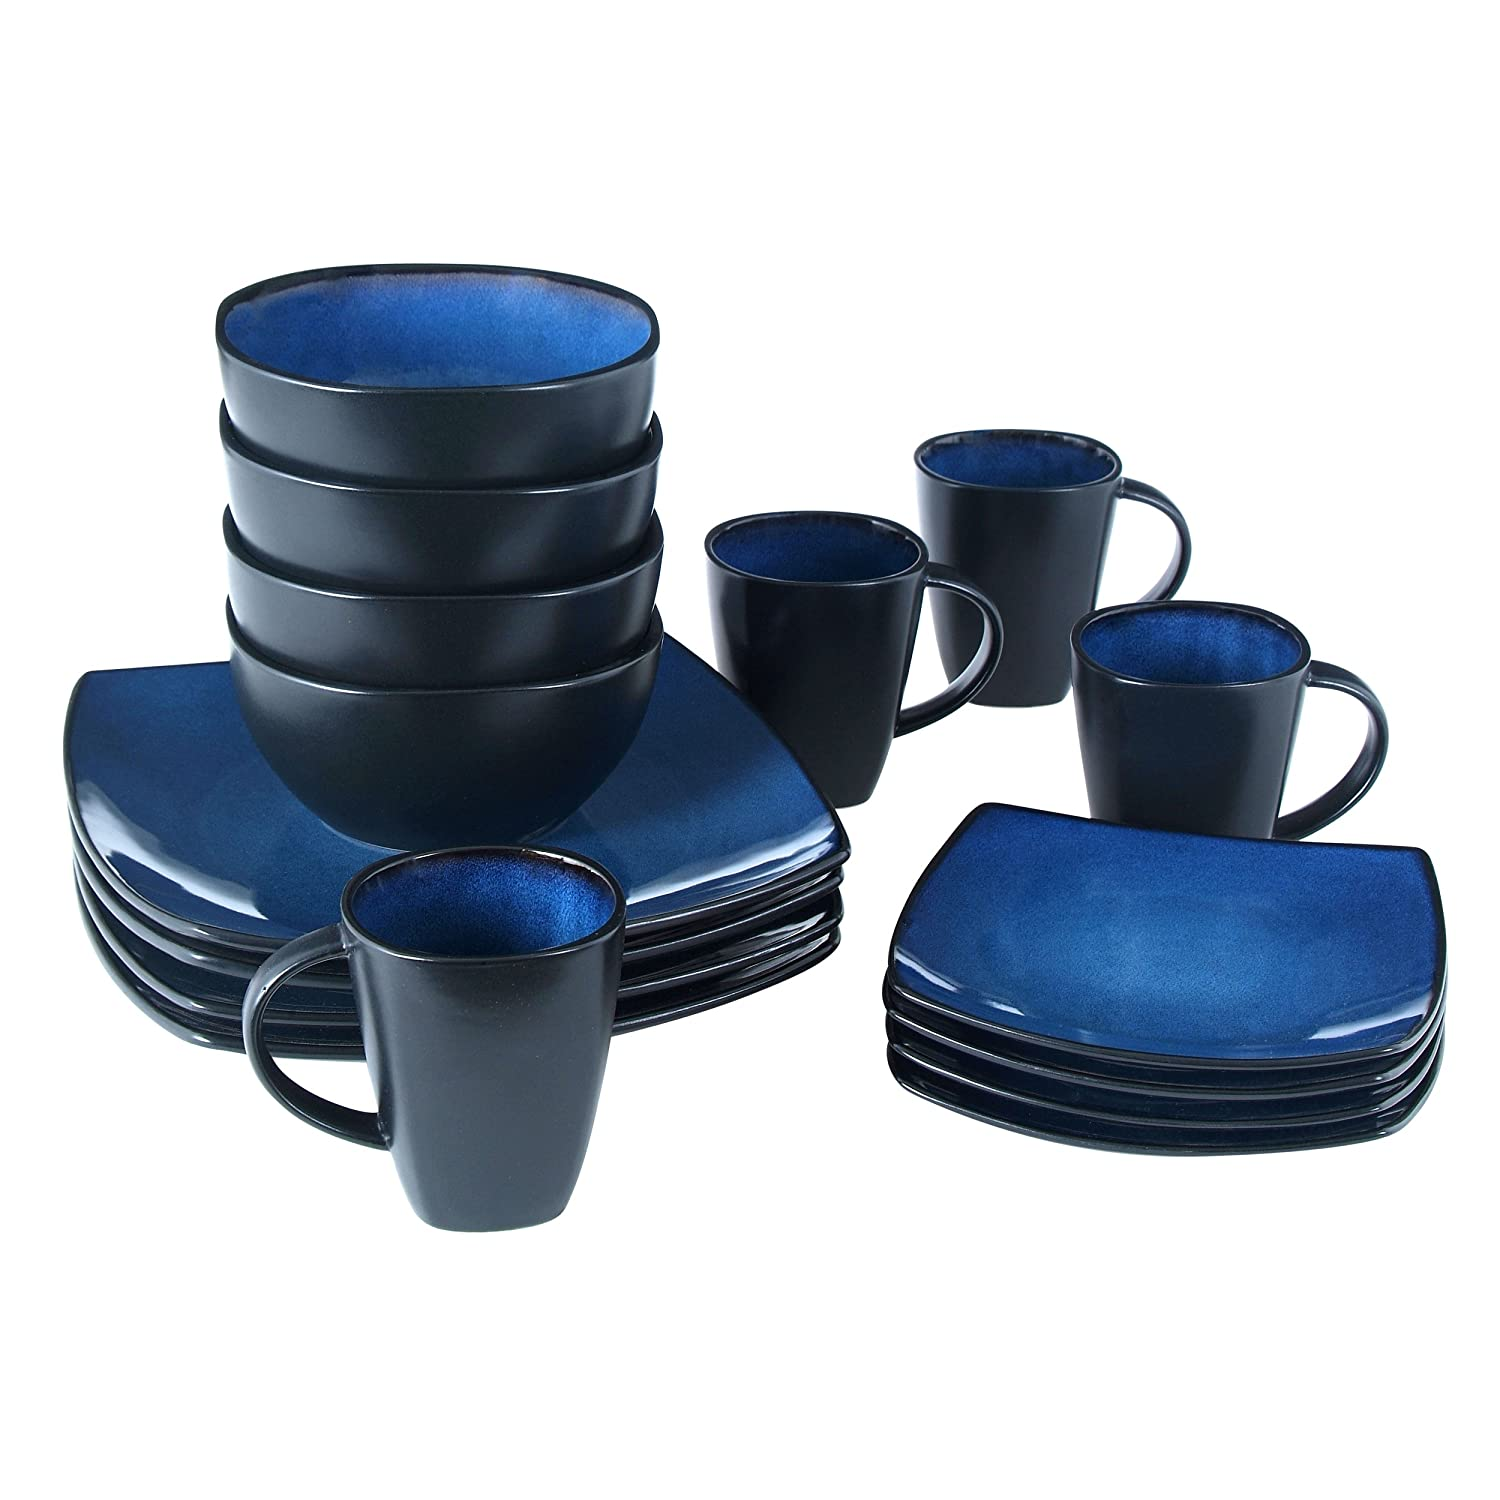 Amazon.com Gibson Bella Soho 16-Piece Square Reactive Glaze Dinnerware Set Blue Kitchen u0026 Dining  sc 1 st  Amazon.com & Amazon.com: Gibson Bella Soho 16-Piece Square Reactive Glaze ...